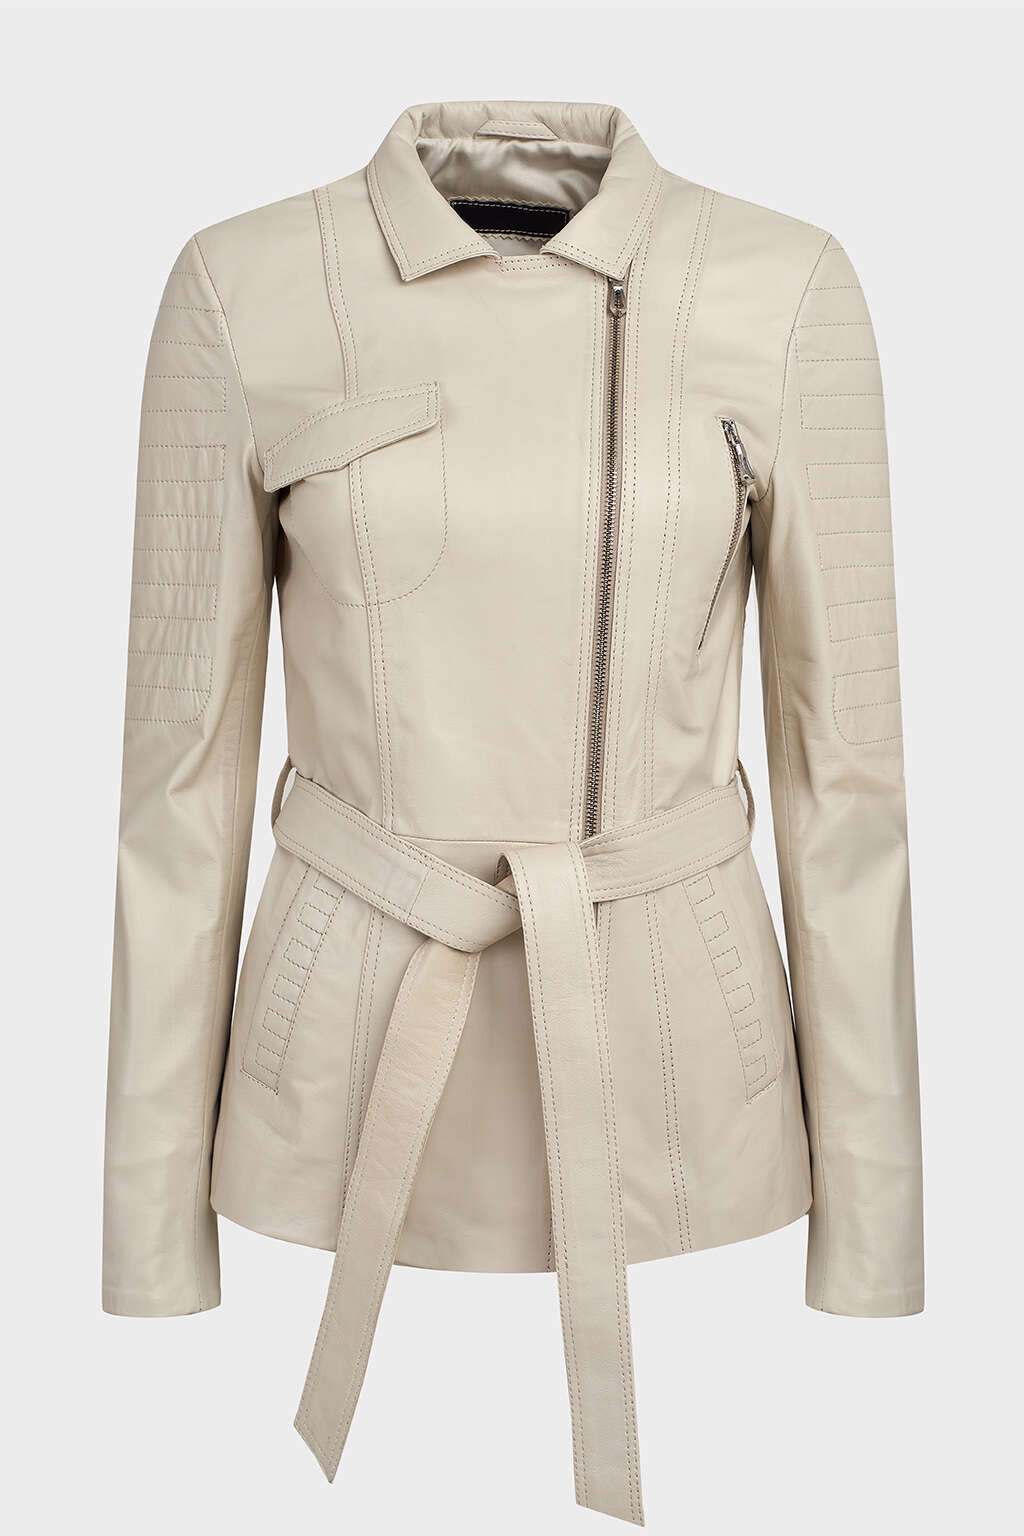 Front of Pearl White Belted Leather Jacket